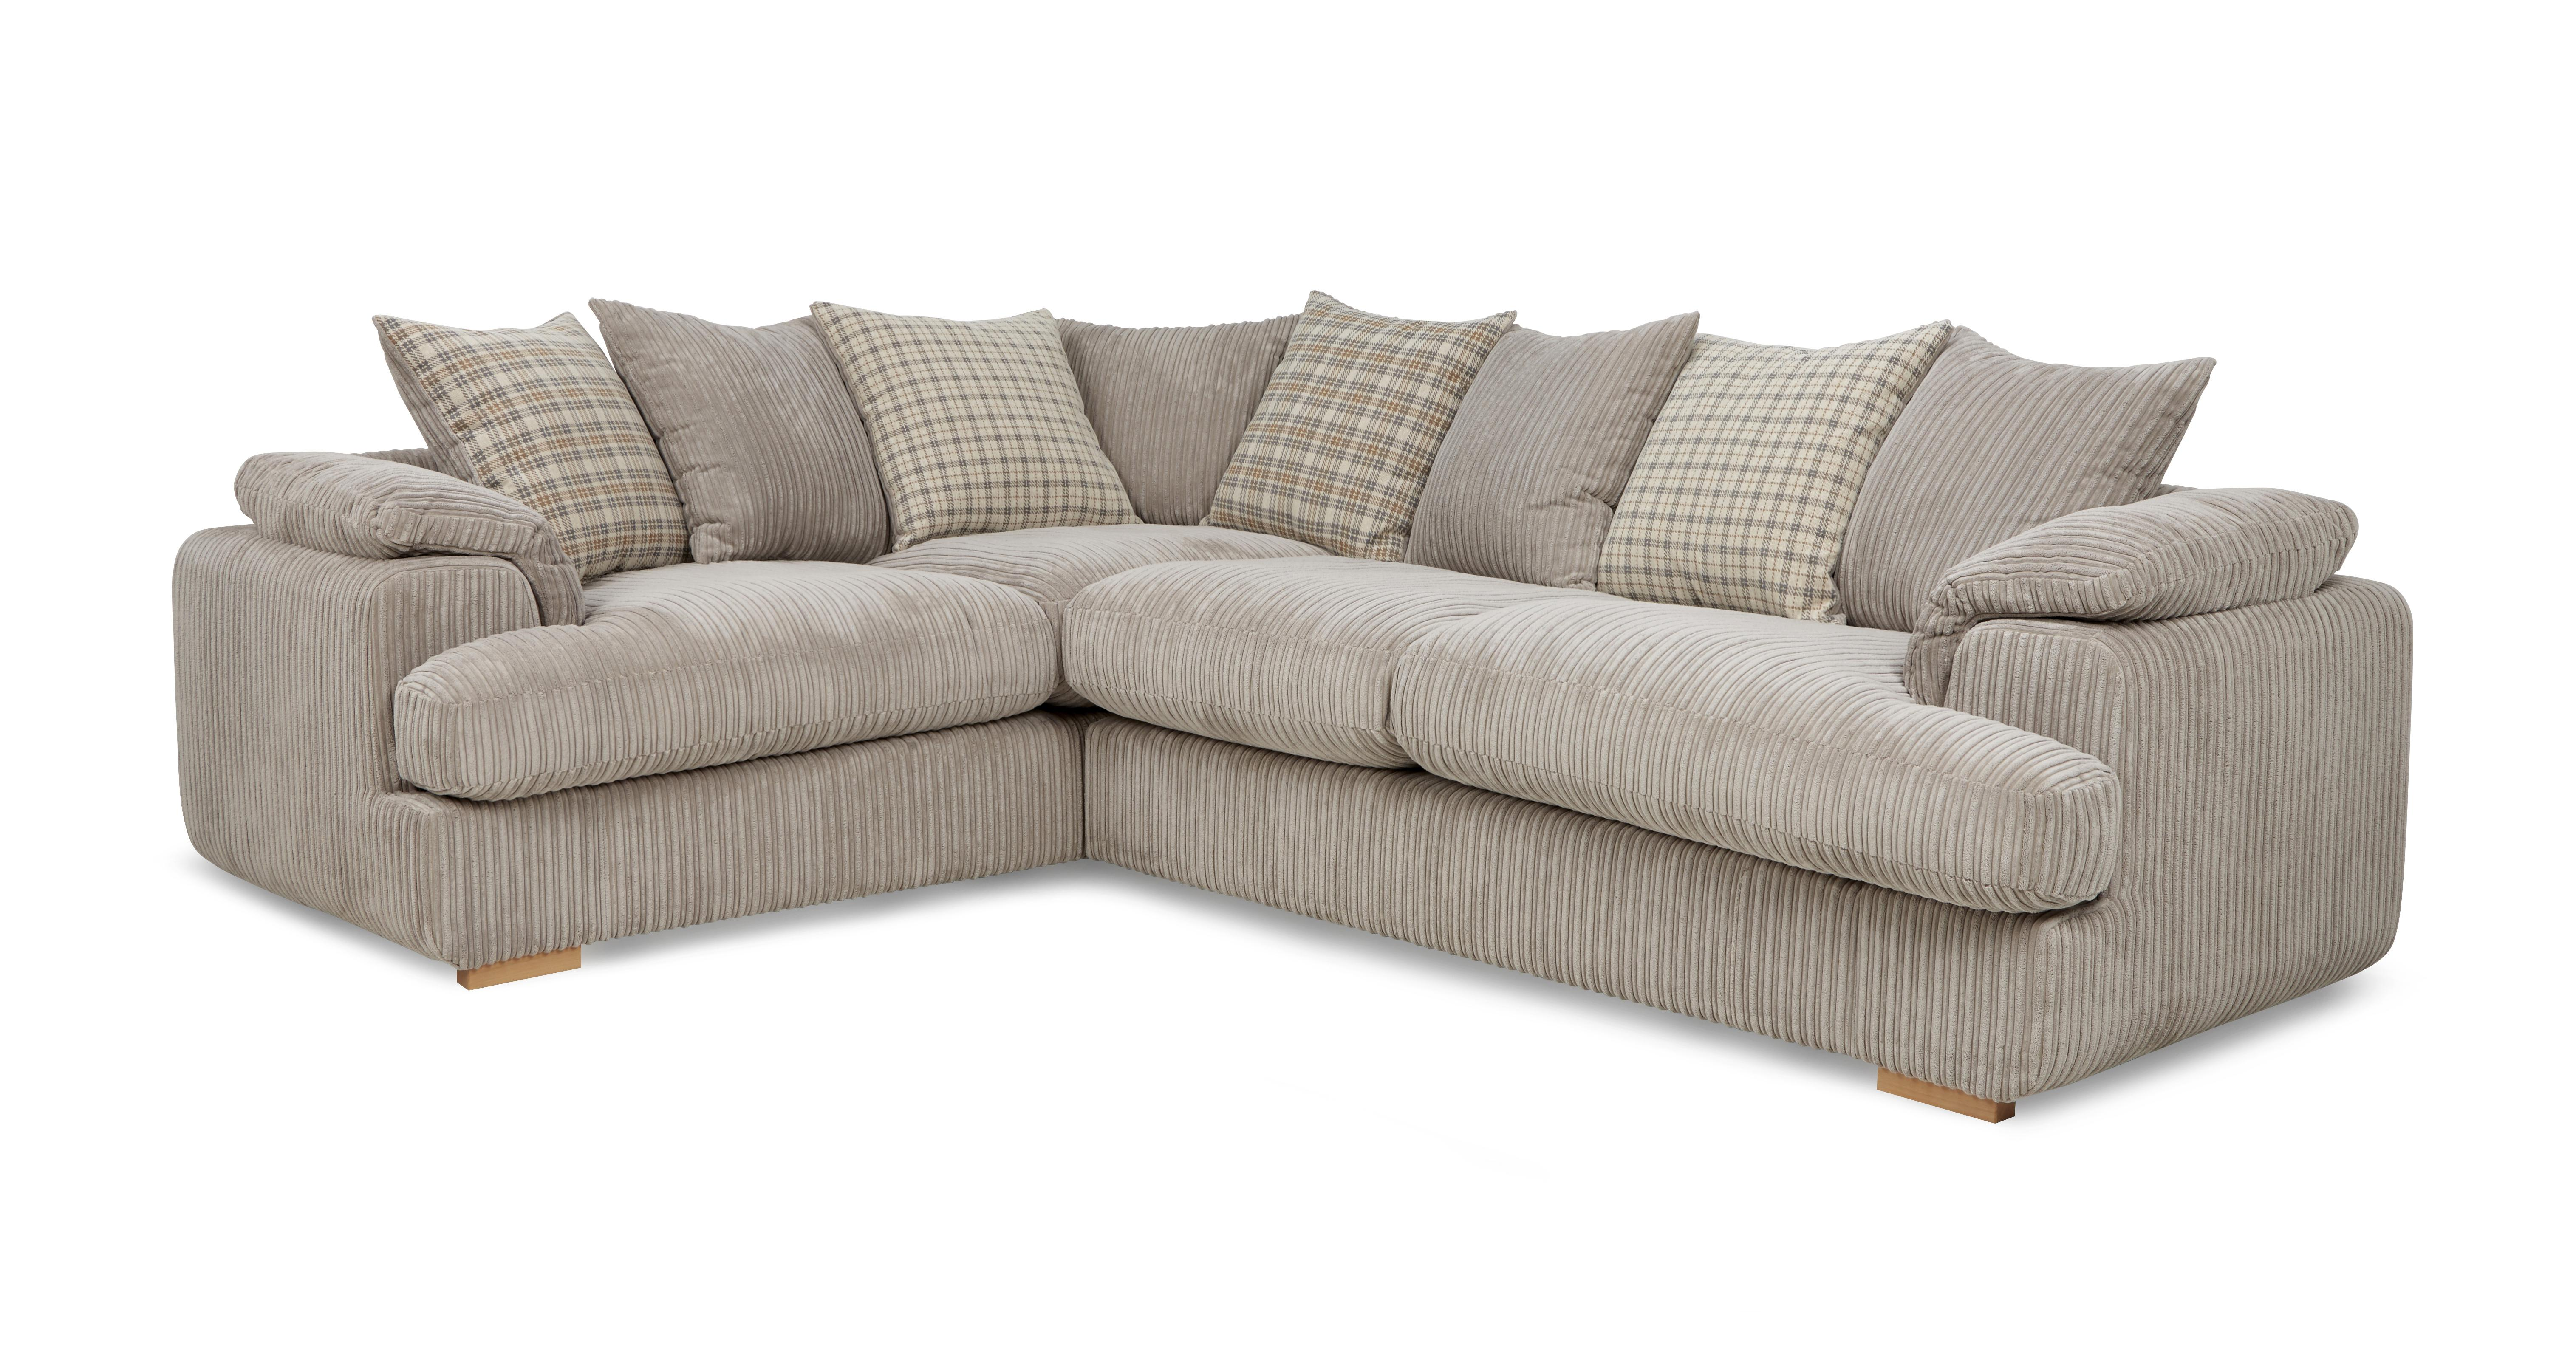 Celine right arm facing 2 seater pillow back corner sofa dfs quick view right arm facing 2 seater pillow back corner sofa celine alternative parisarafo Image collections